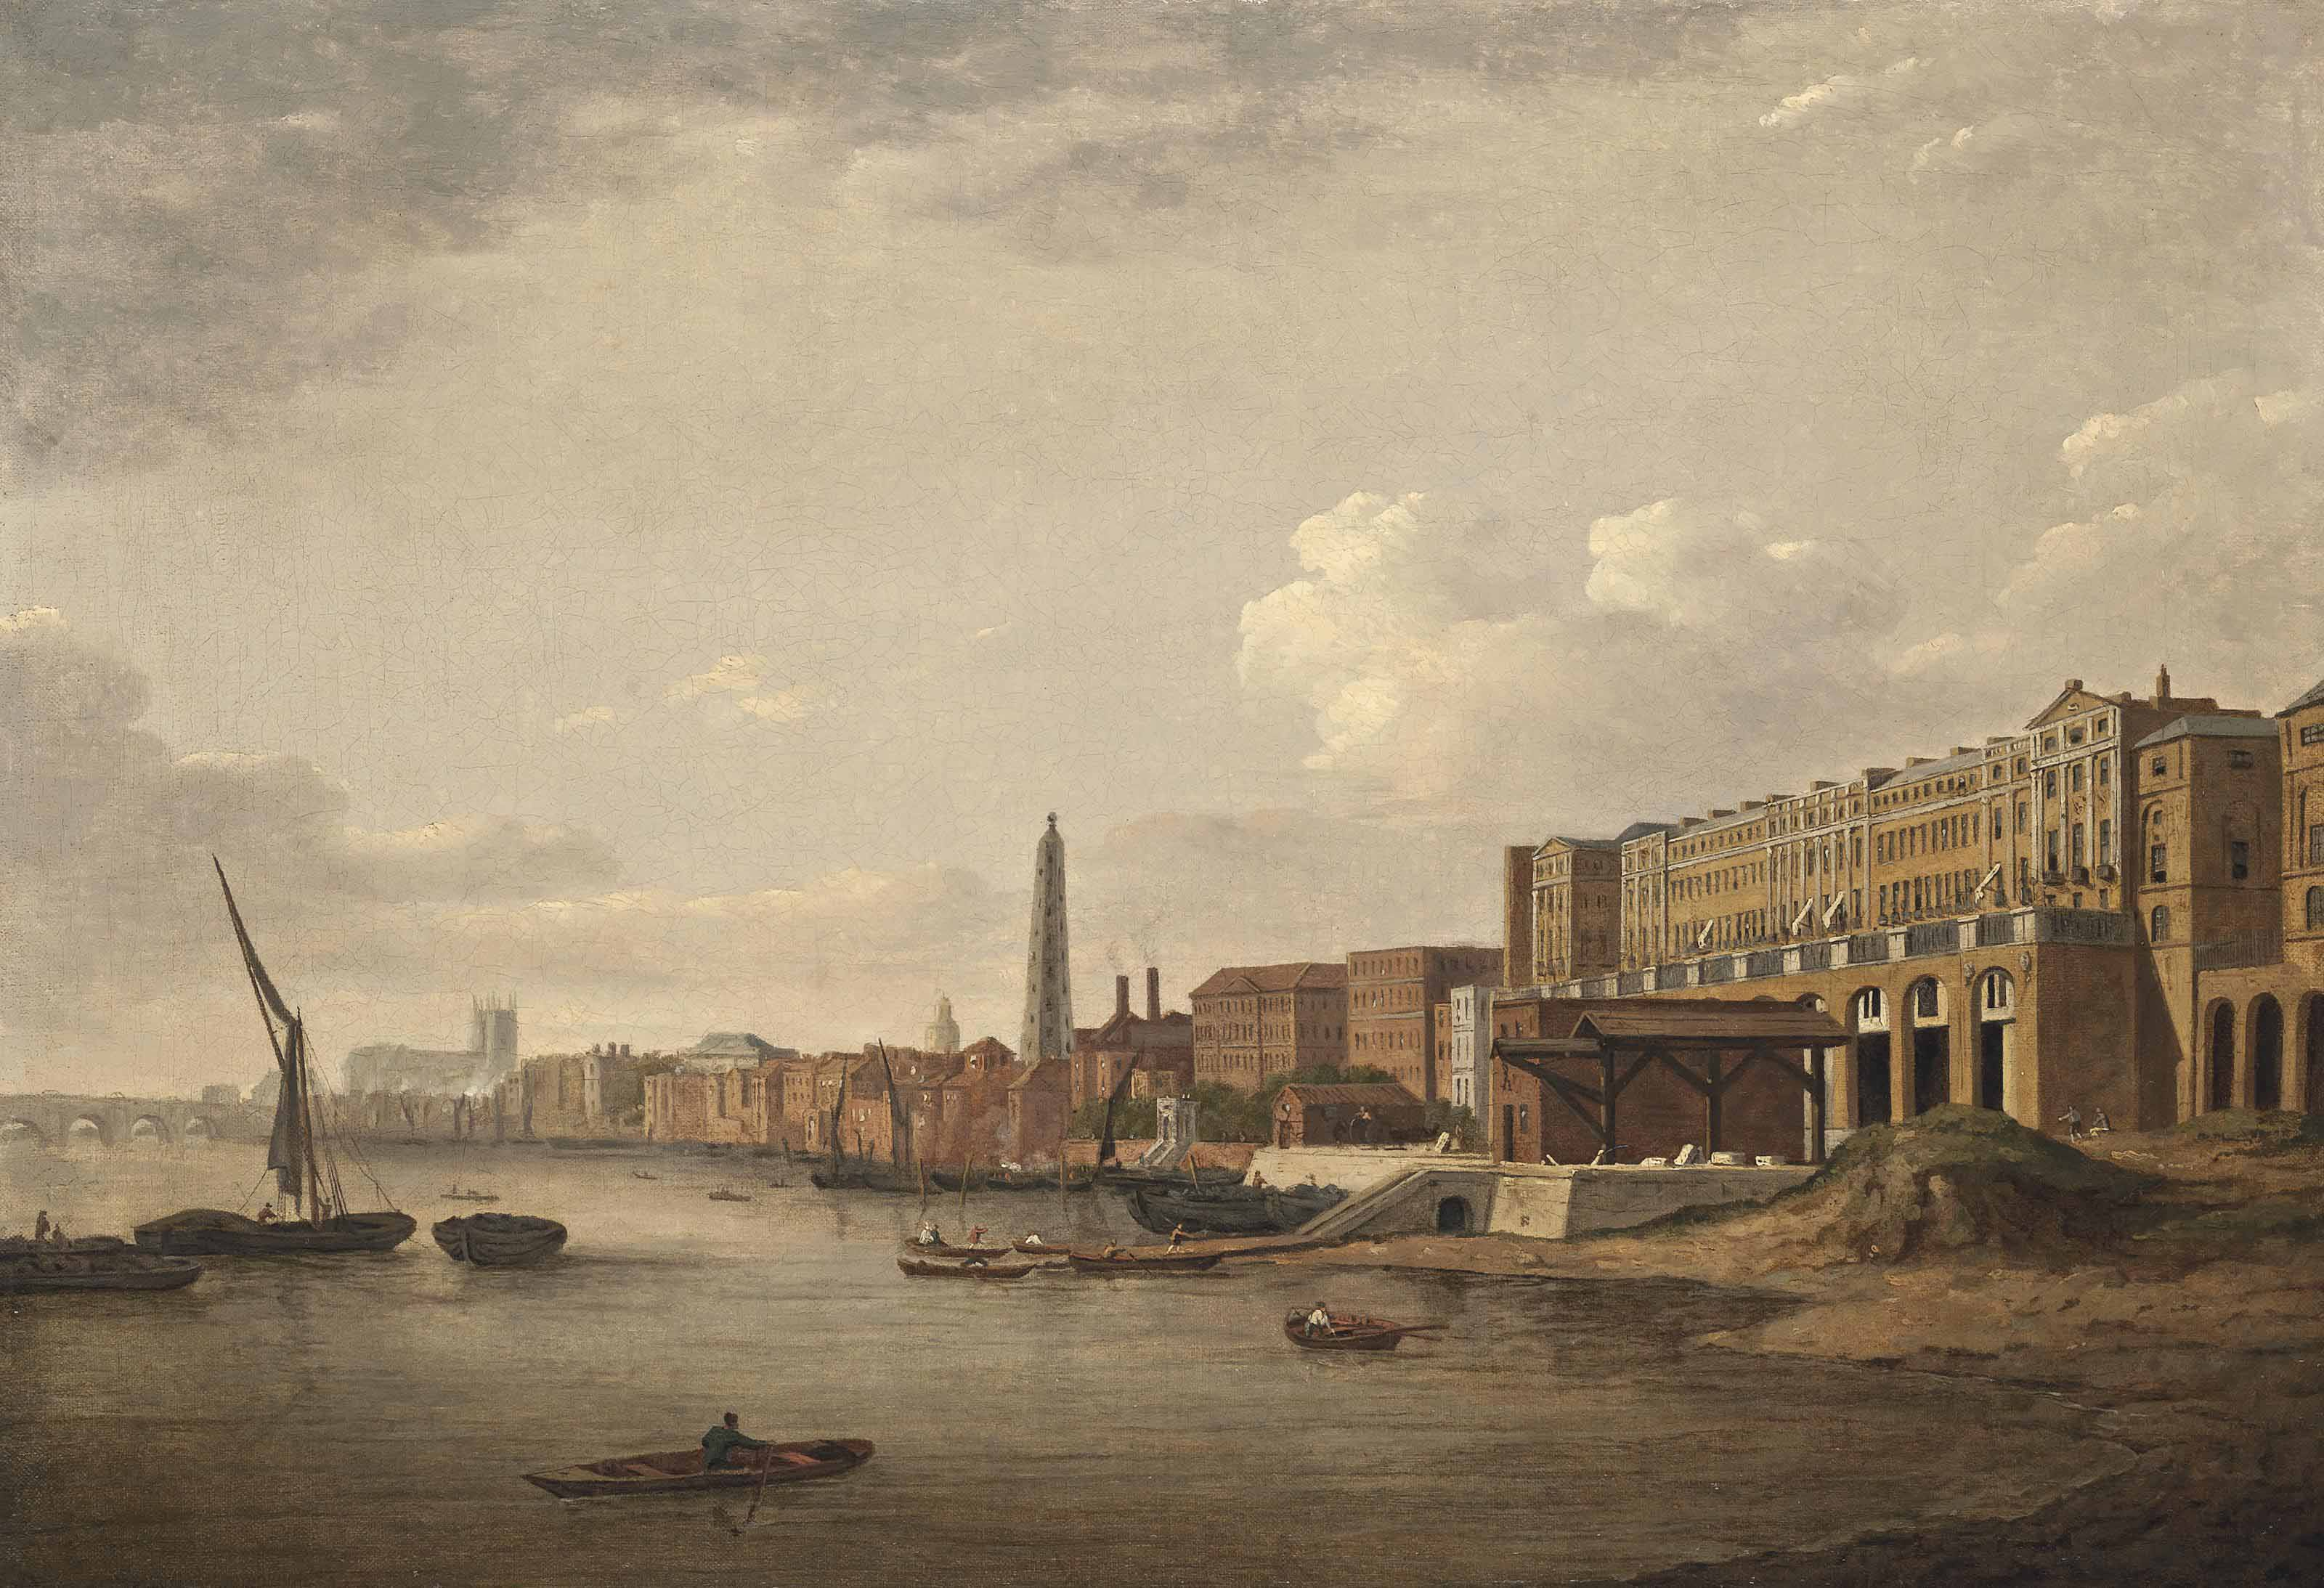 View of the London Riverfront from Westminster to the Adelphi